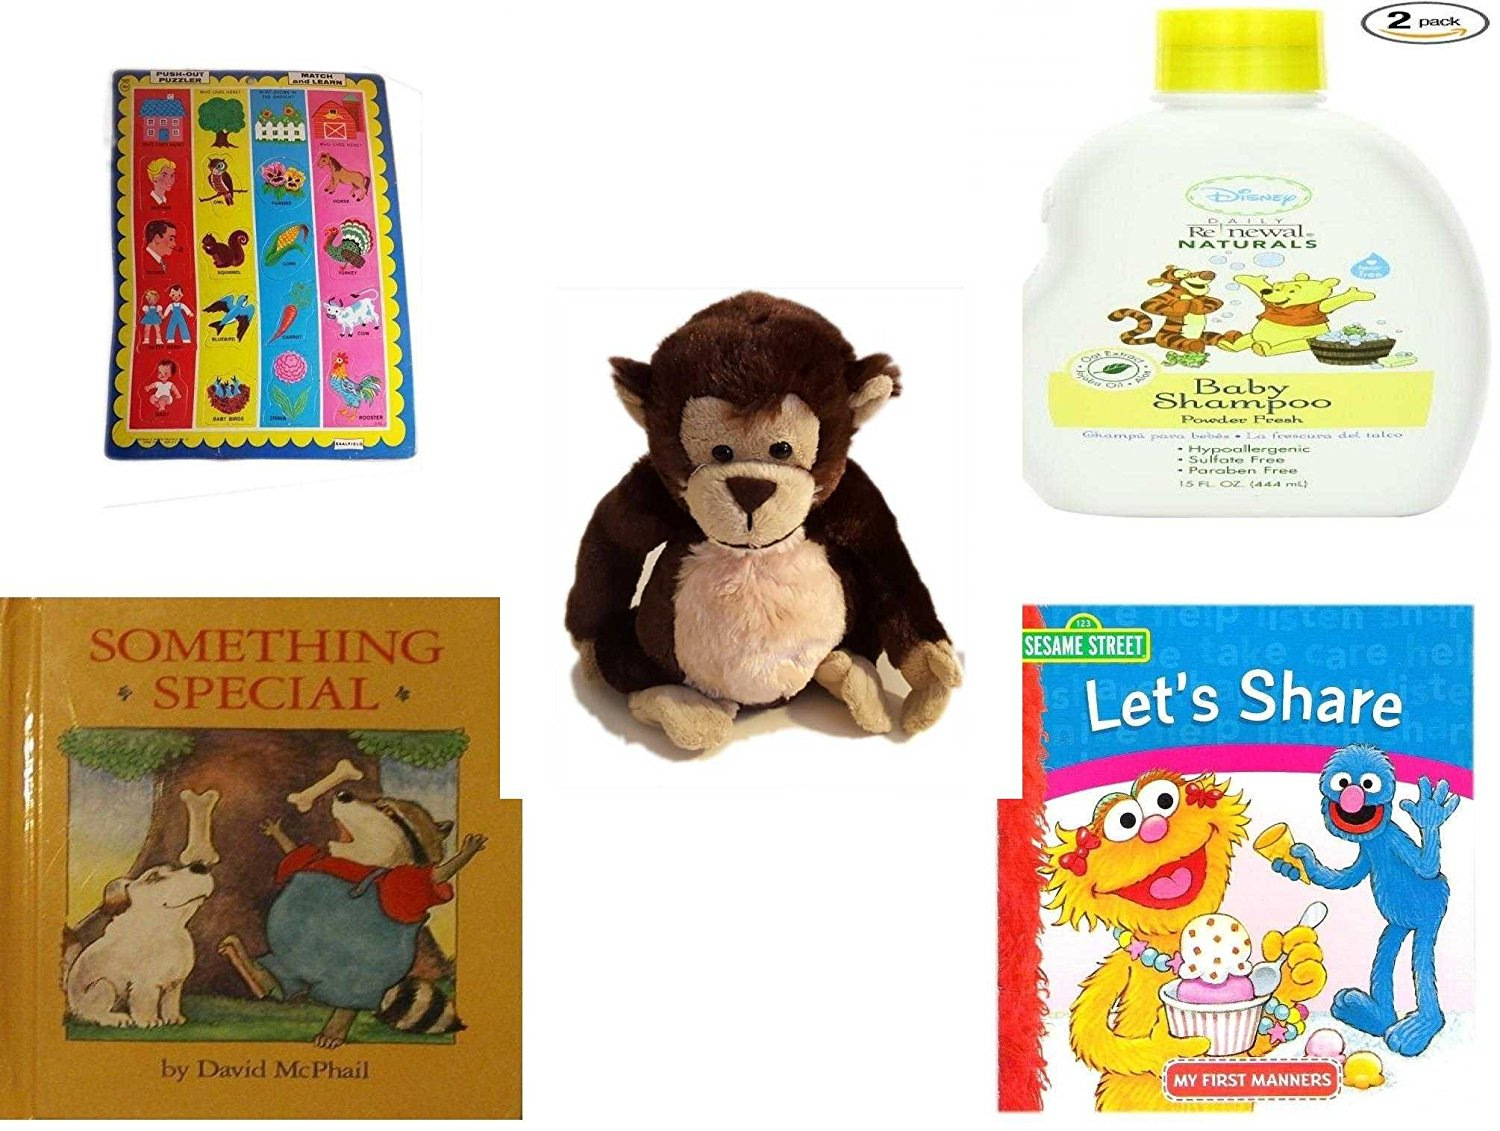 Children's Gift Bundle - Ages 0-2 [5 Piece] - Push Out Puzzler Match and Learn - Travel Size Disney Baby Daily Renewal Naturals Shampoo Powder Fresh, 1.7 Ounce (Pack of 2) - Ganz Adorable Chimpanzee